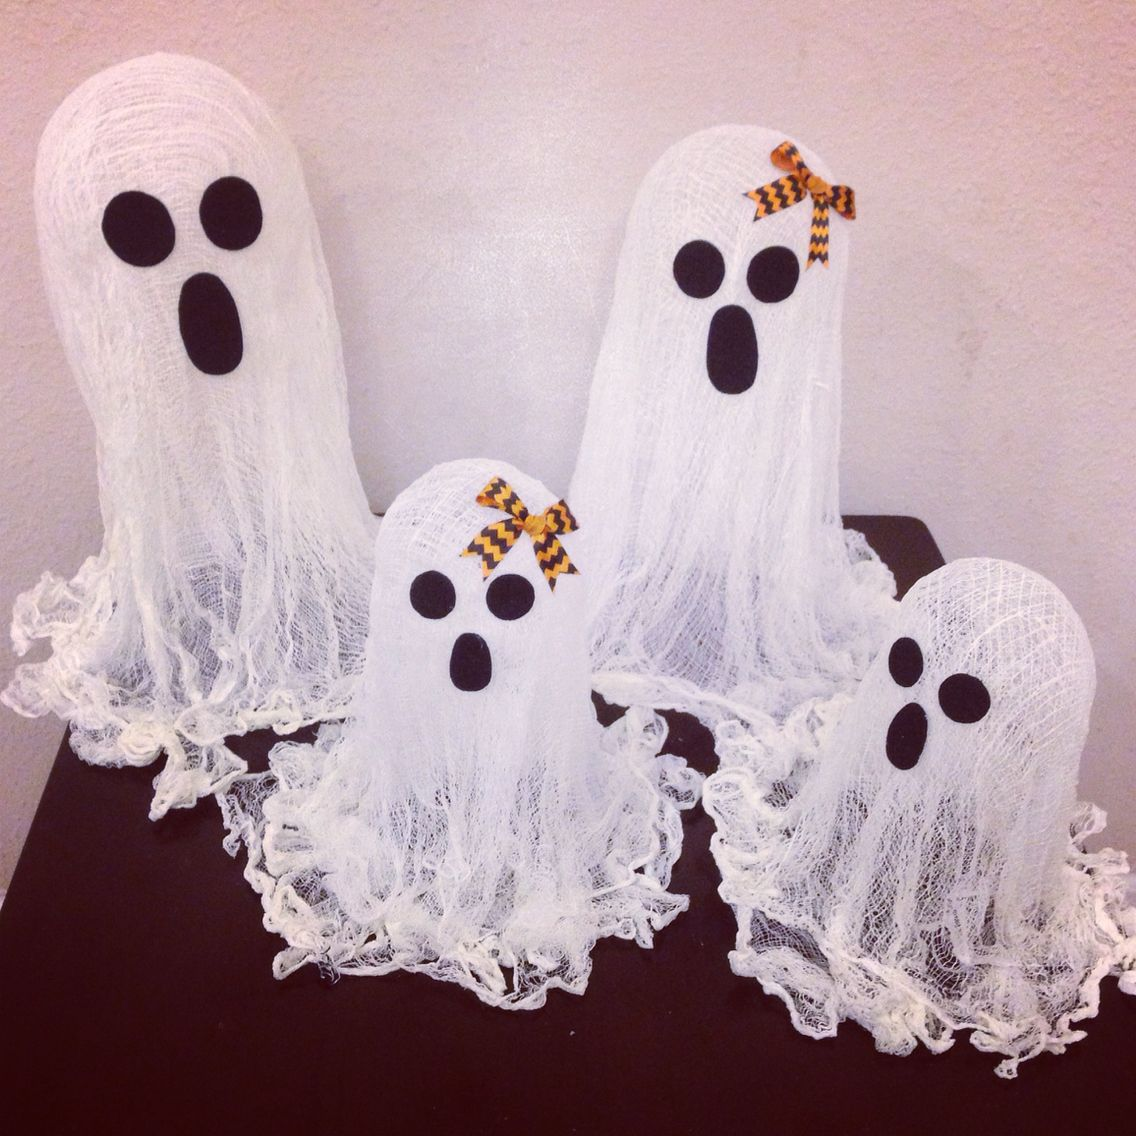 My cheesecloth ghost family!